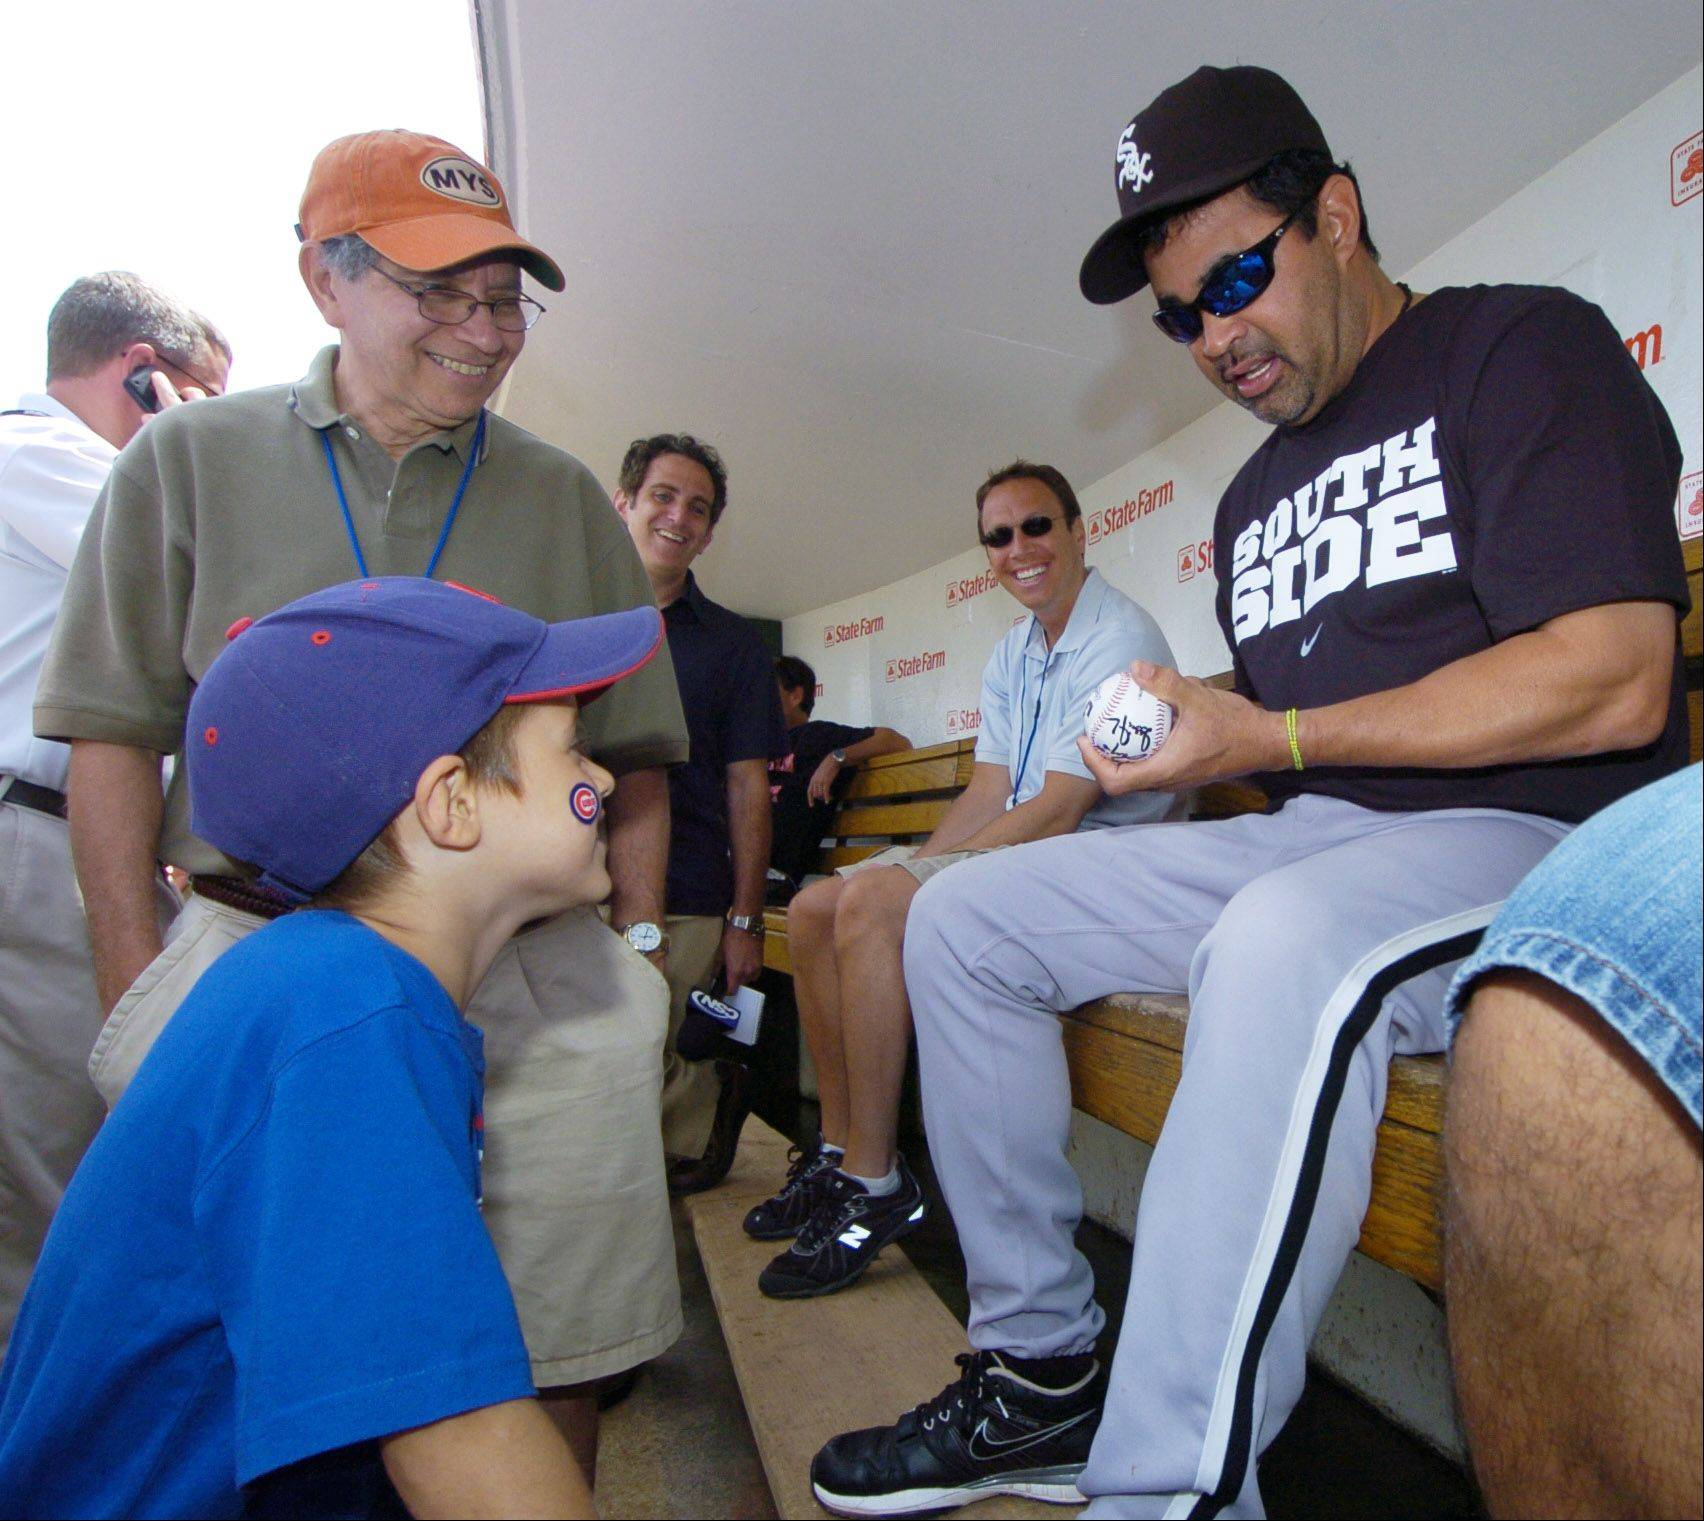 White Sox Manager Ozzie Guillen stops his interview with the media to sign a ball for Trevor Anglin, 6, of Carterville, Ill. before Sunday's game at Wrigley Field. Anglin was sent into the dugout by Cubs General Manager Jim Hendry as a gentle prank on Guillen.